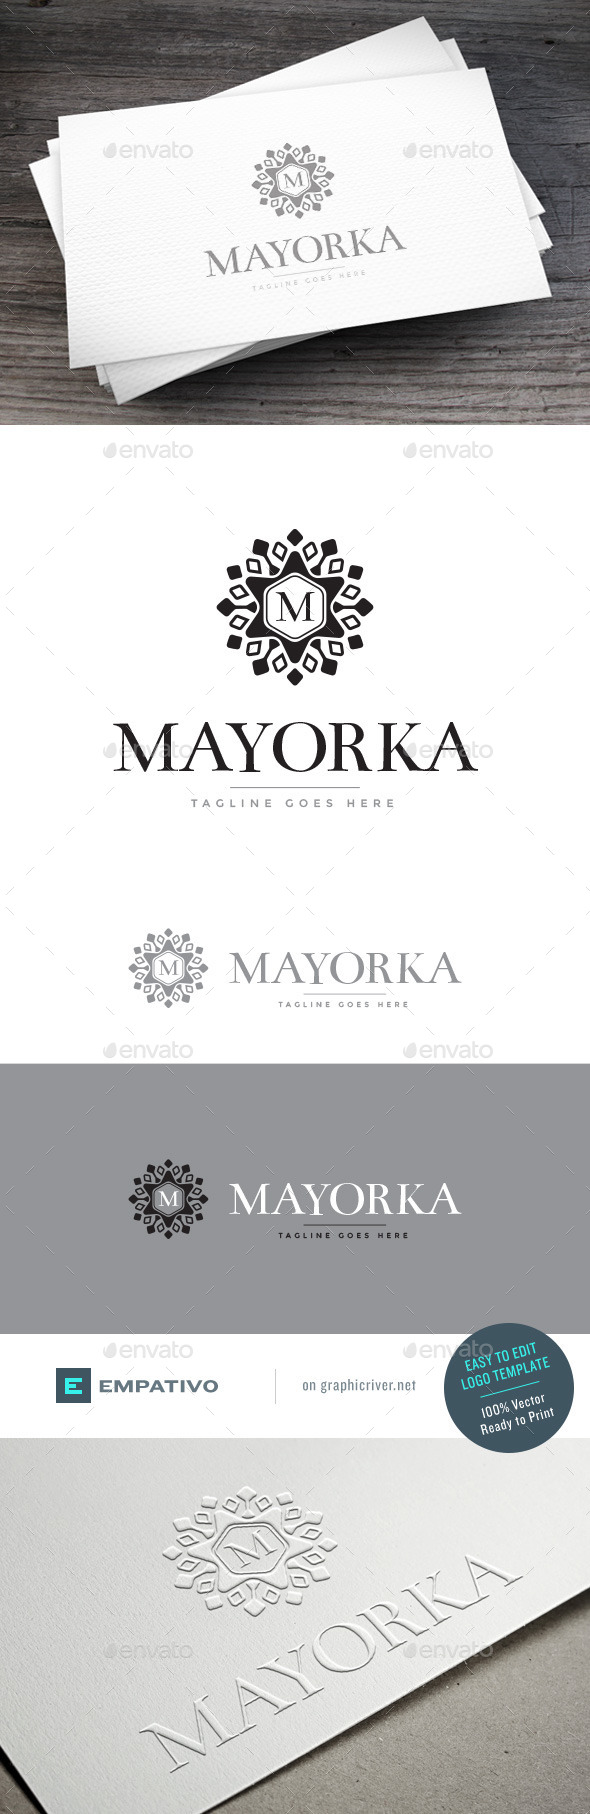 GraphicRiver Mayorka Logo Template 11098331